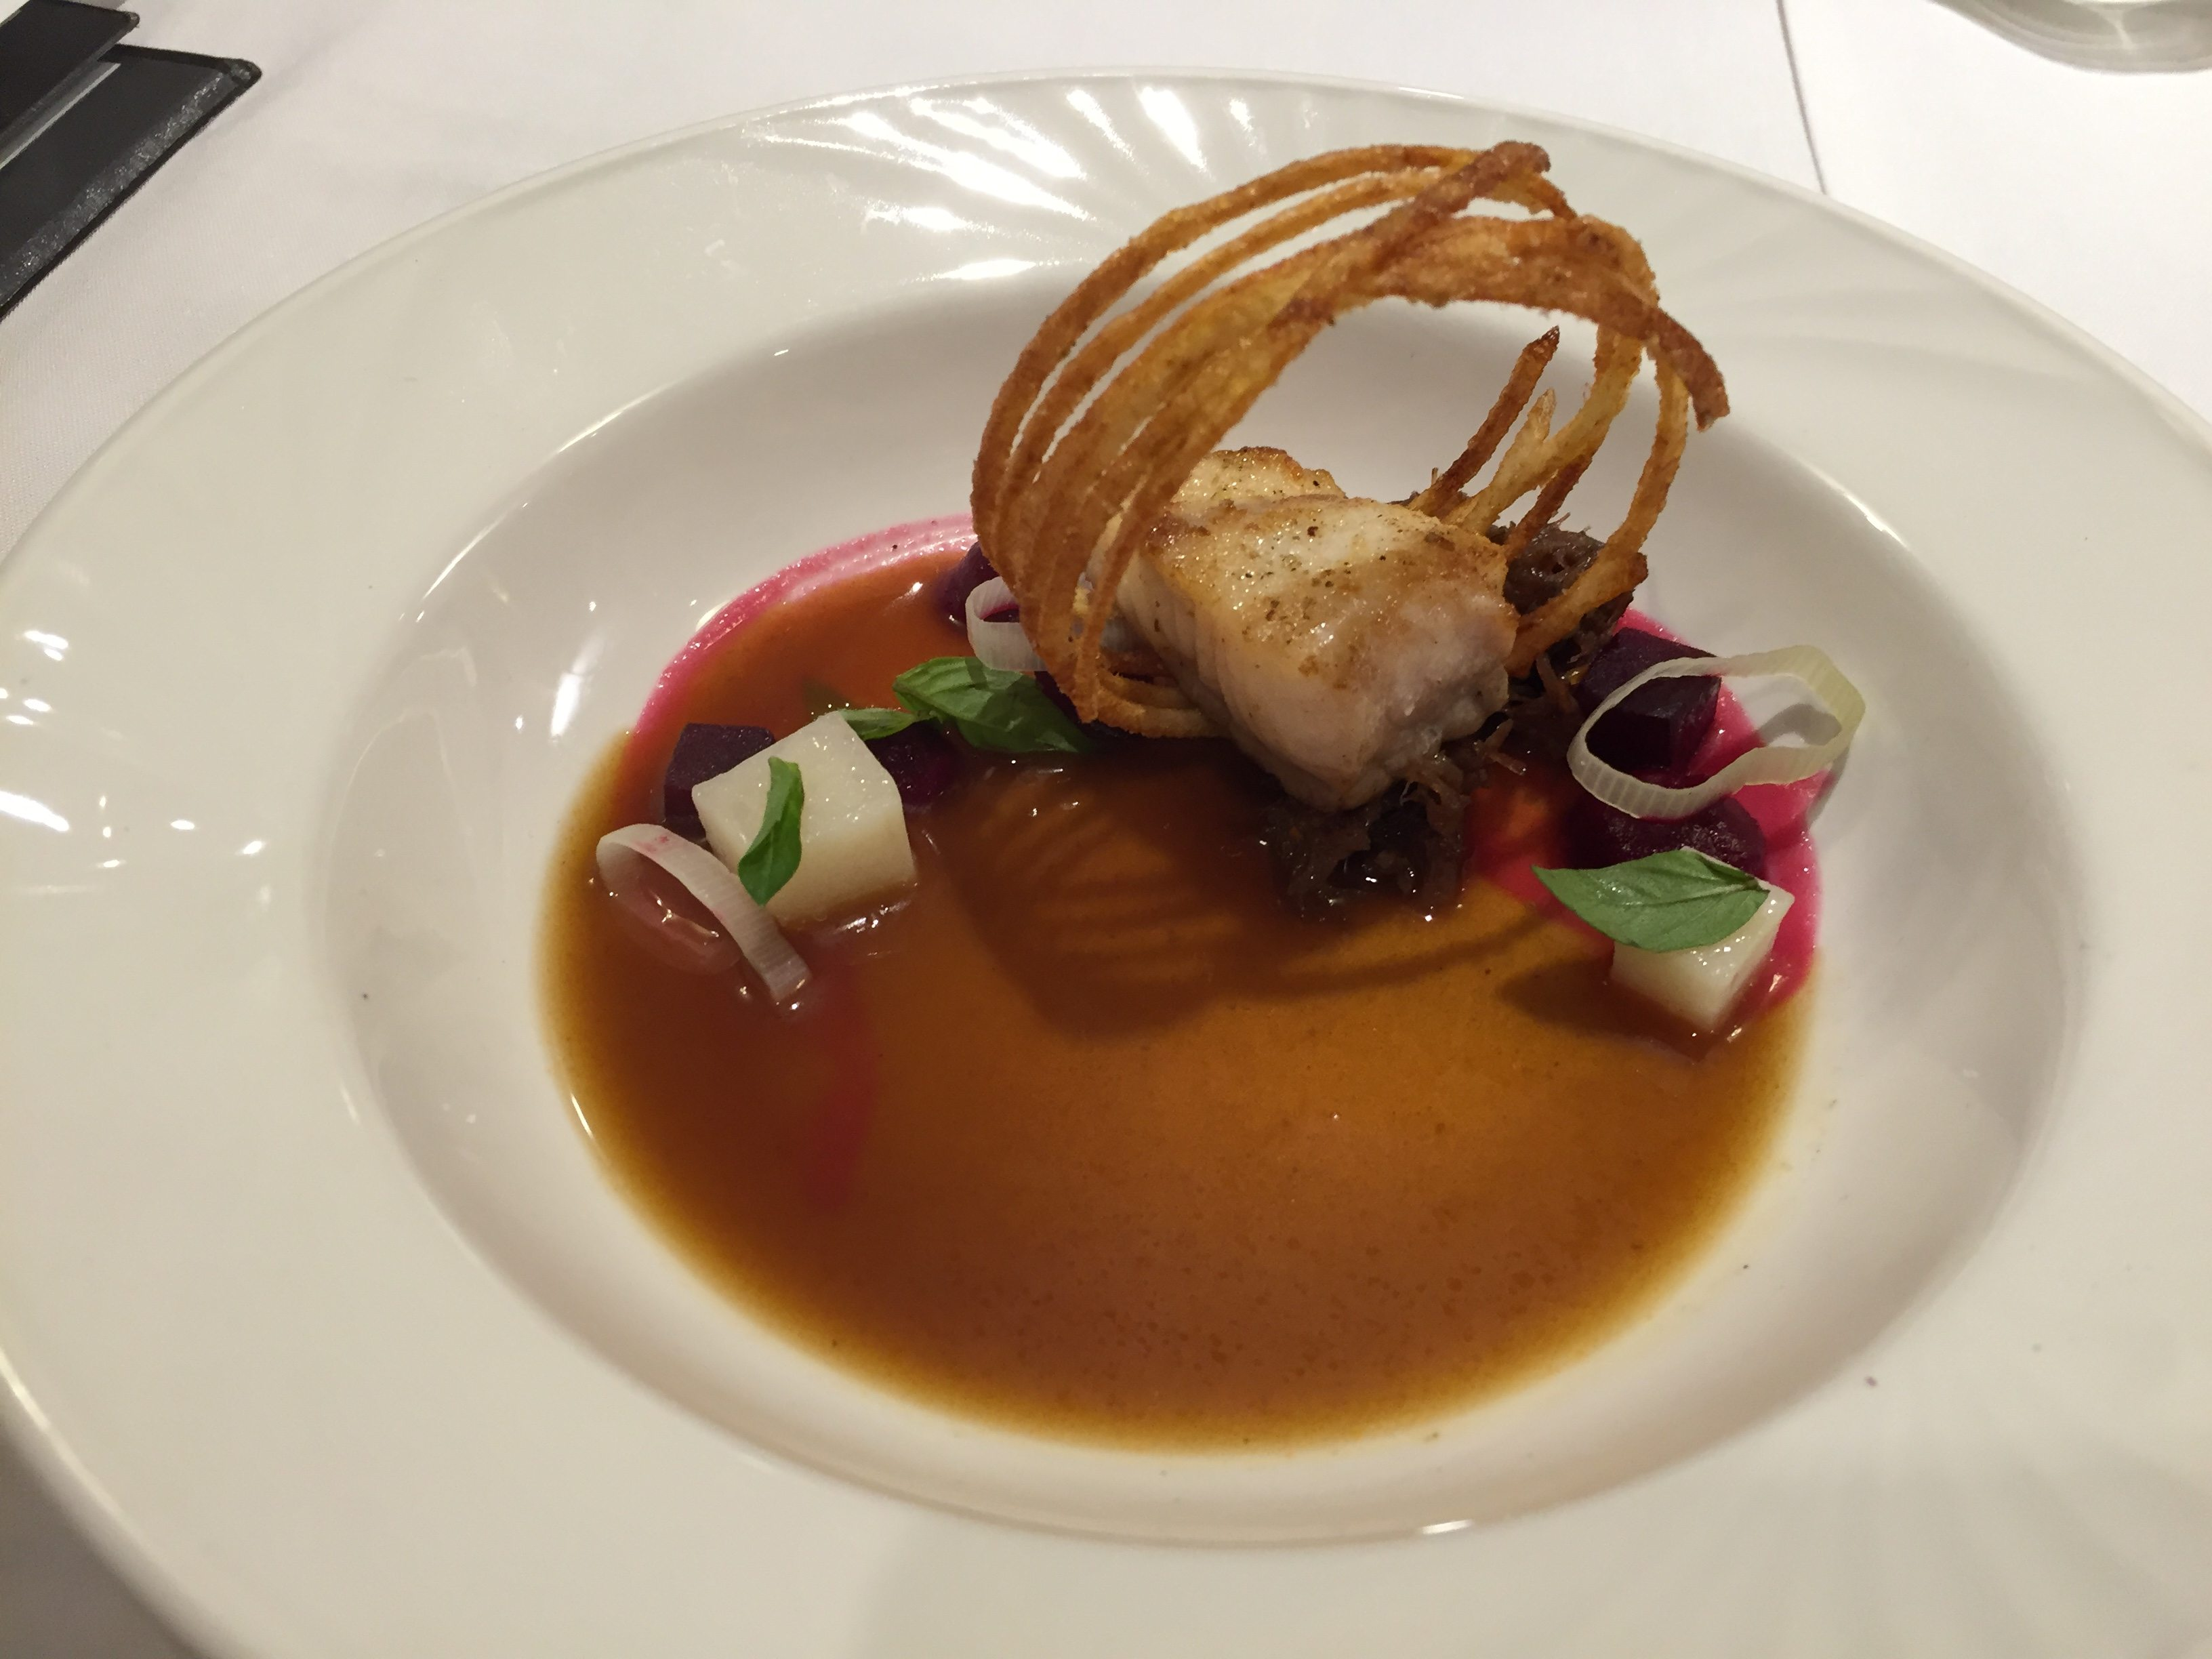 Chef Marc Lepine's dish for the mystery wine pairing. Photo by Anne DesBrisay, Ottawa Magazine.